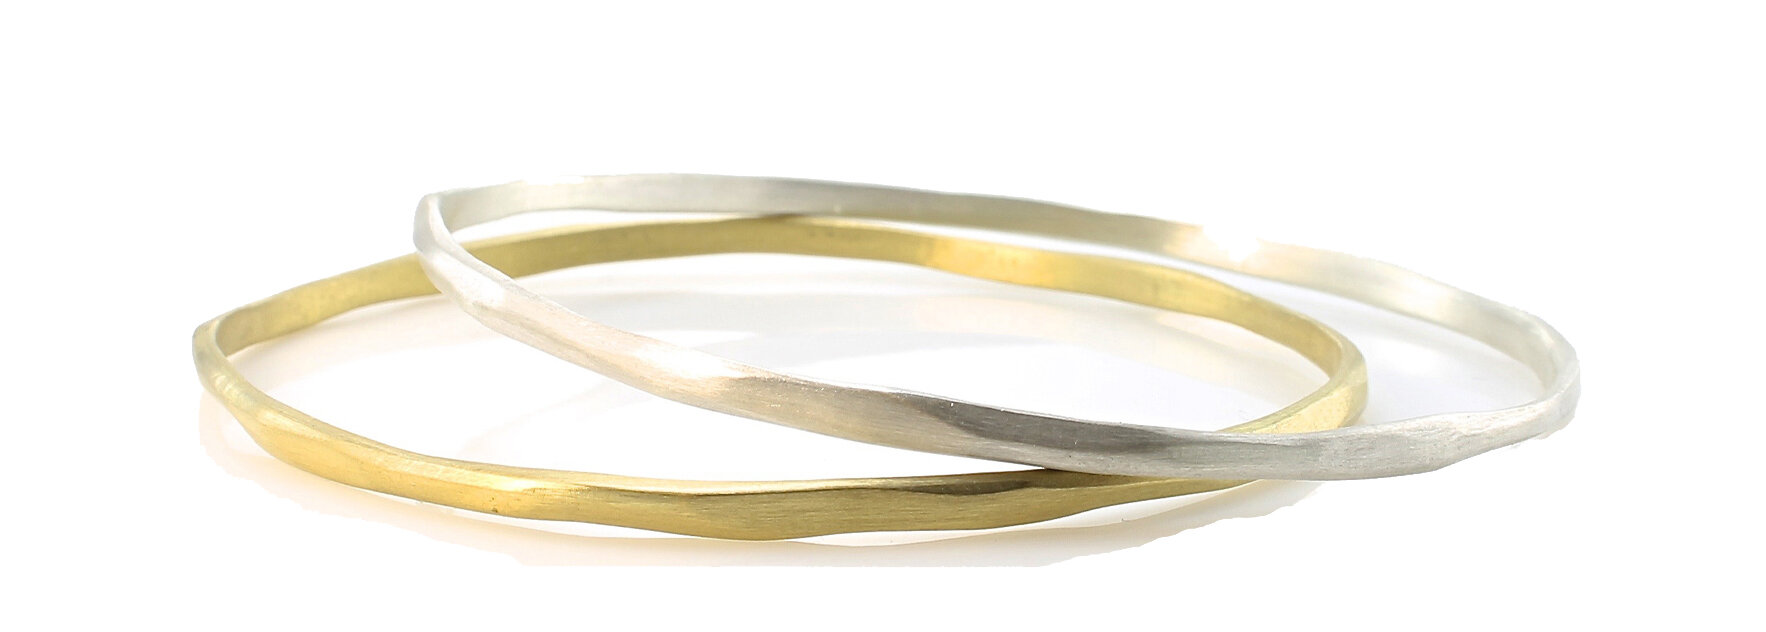 Thin carved bangles in sterling silver and 18k gold